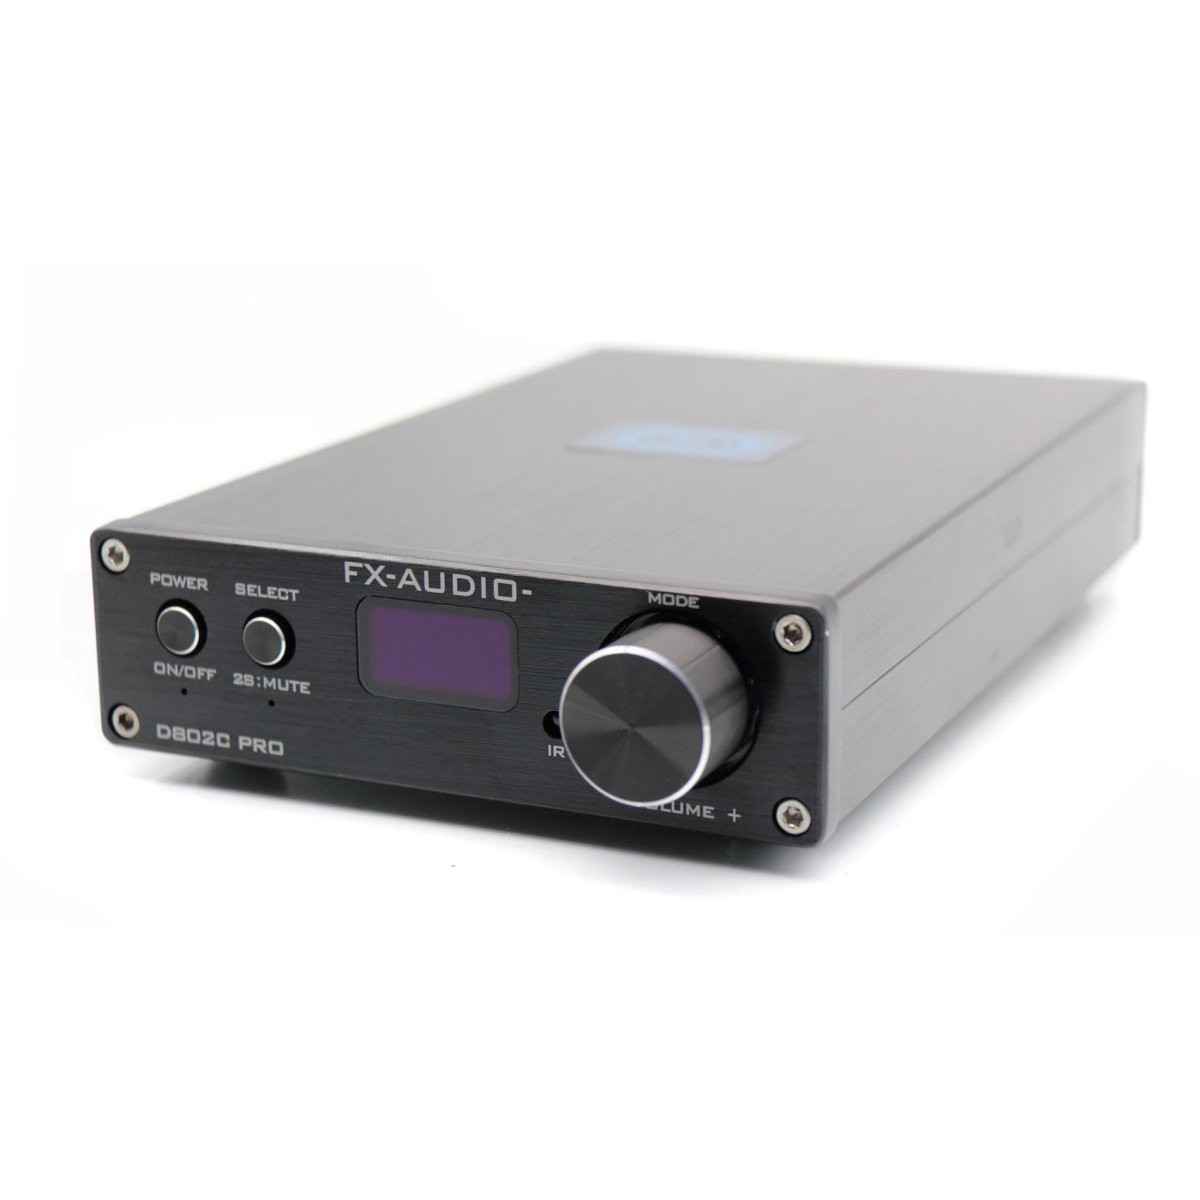 FX-AUDIO D802C PRO Amplifier FDA Bluetooth 4.2 NFC Class D STA326 2x50W / 8 Ohm Black